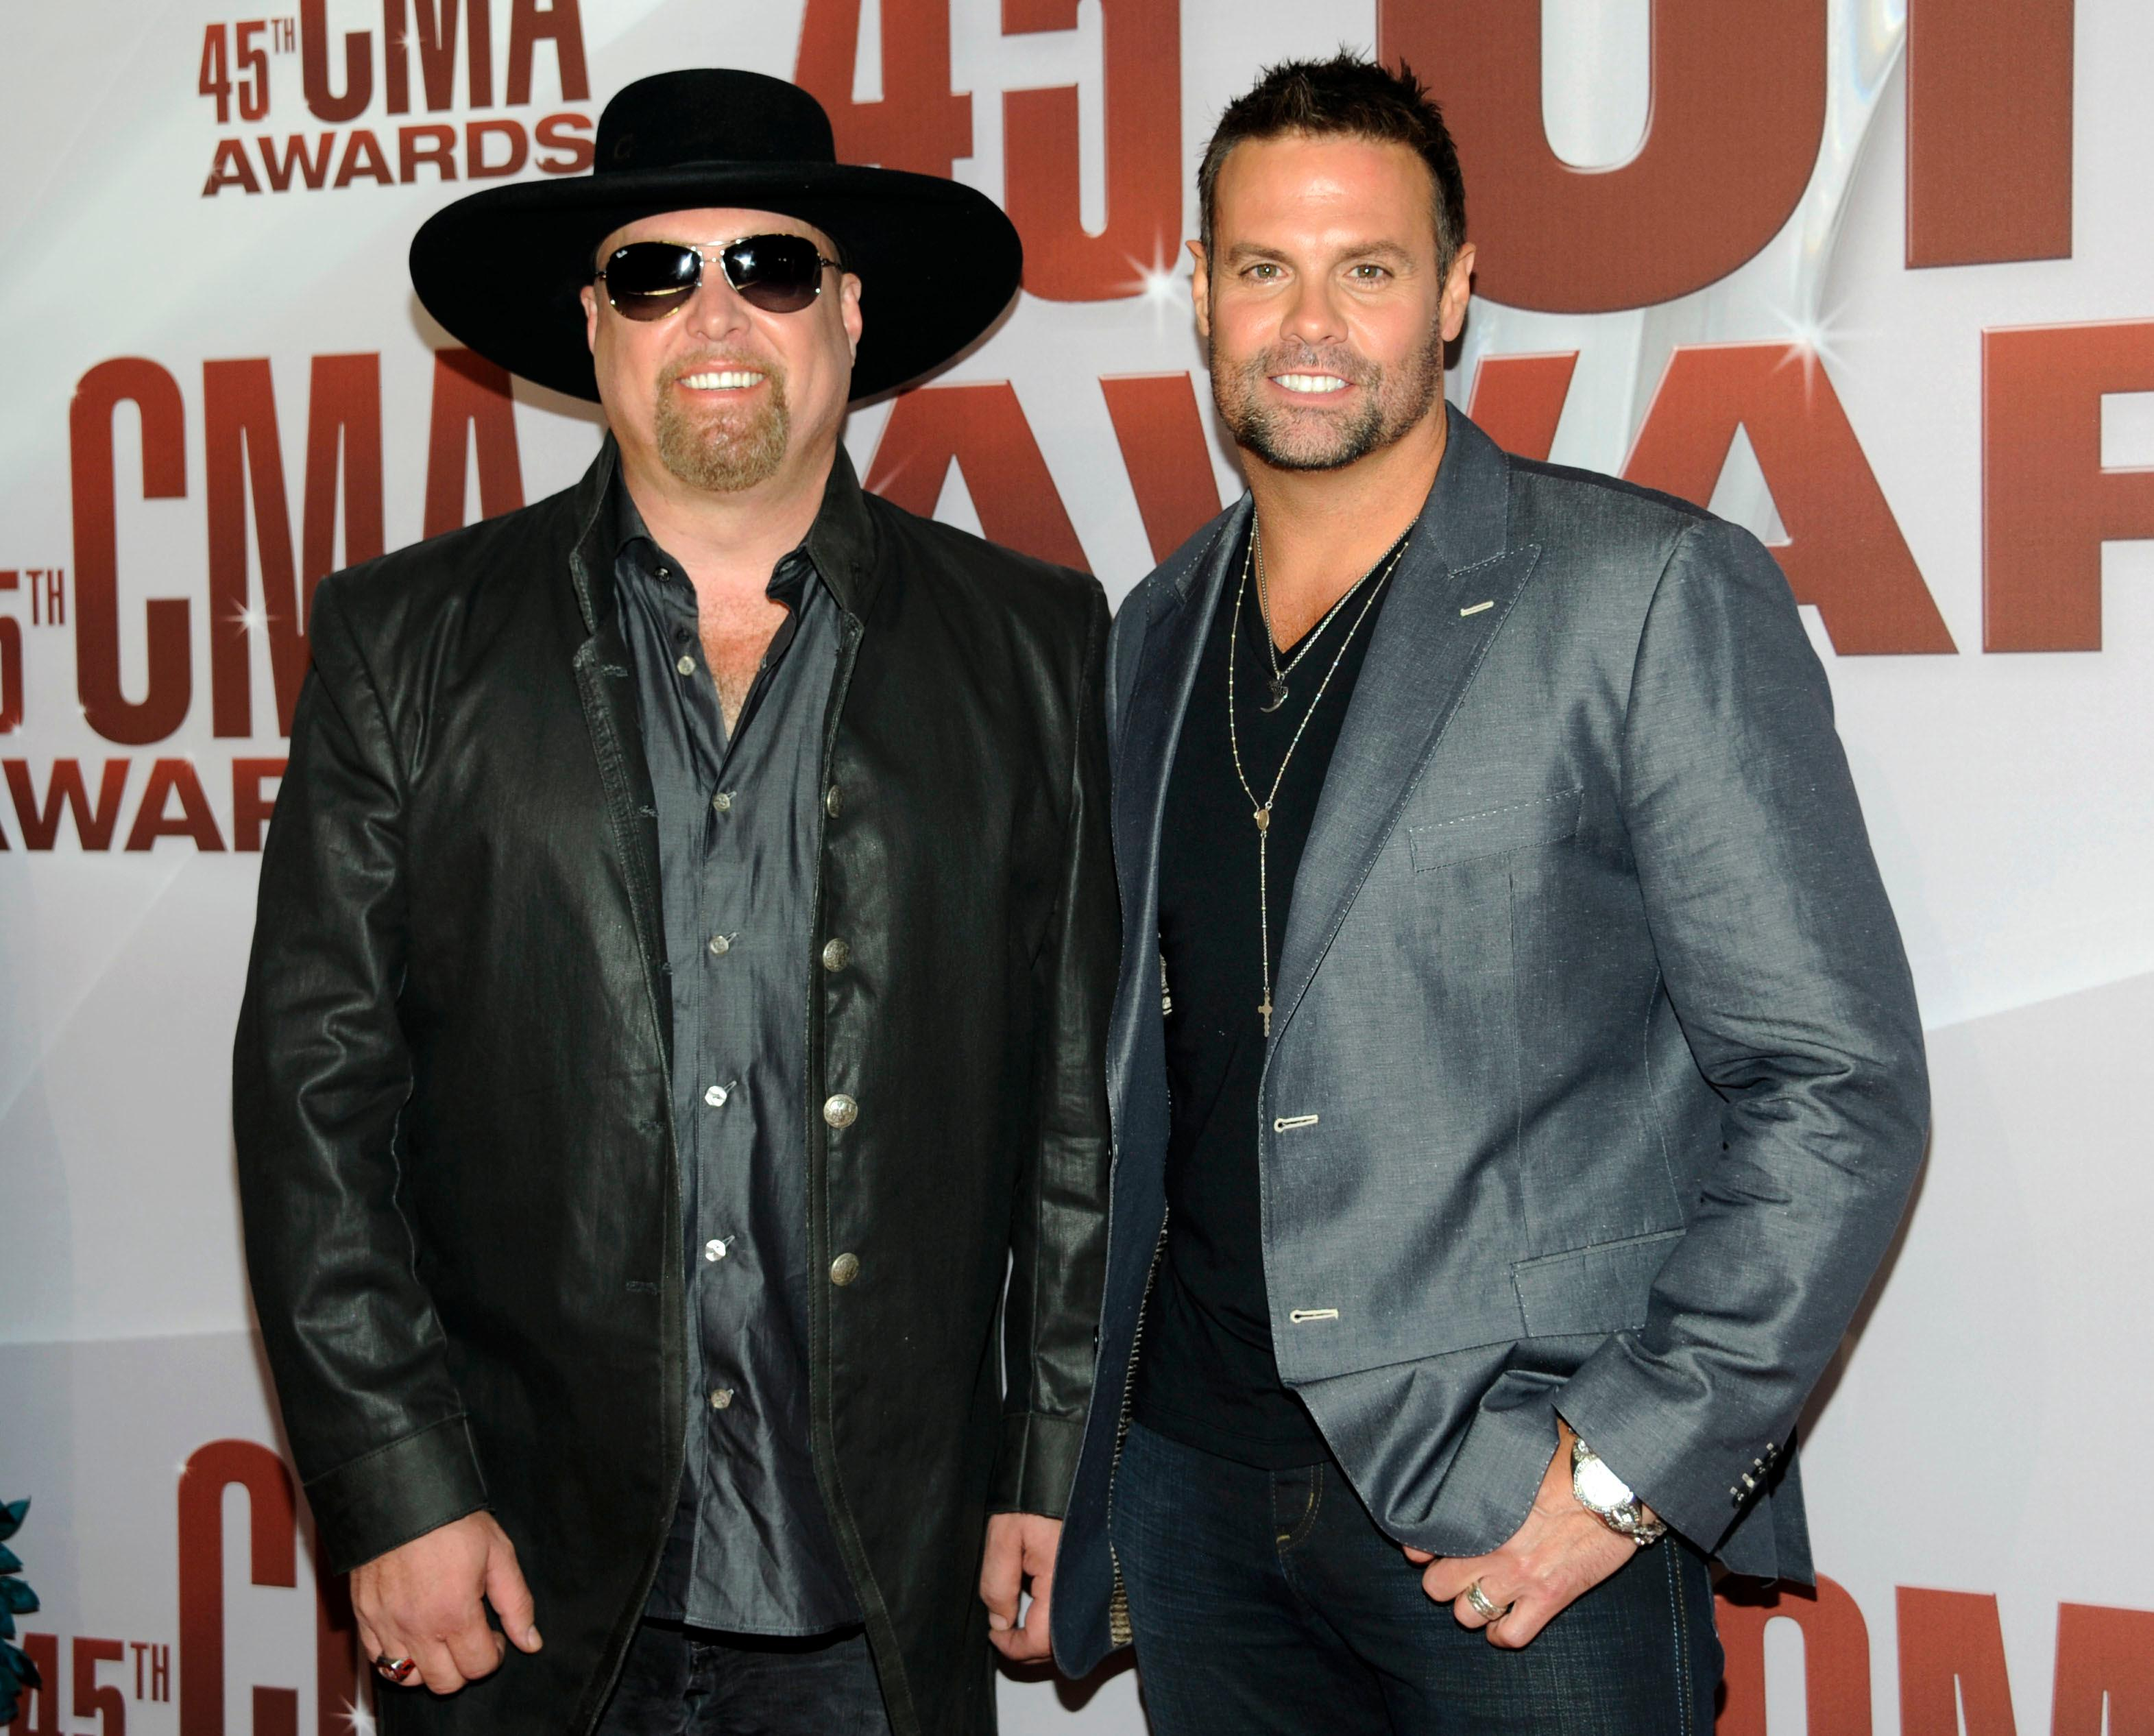 FILE - In this Nov. 9, 2011 file photo, Eddie Montgomery, left, and Troy Gentry of Montgomery Gentry arrive at the 45th Annual CMA Awards in Nashville, Tenn. Gentry, one half of the award-winning country music duo Montgomery Gentry, died Friday, Sept. 8, 2017, in a helicopter crash, according to a statement from the band's website. He was 50.  The group was supposed to perform Friday at the Flying W Airport & Resort in Medford, N.J. (AP Photo/Evan Agostini, File)